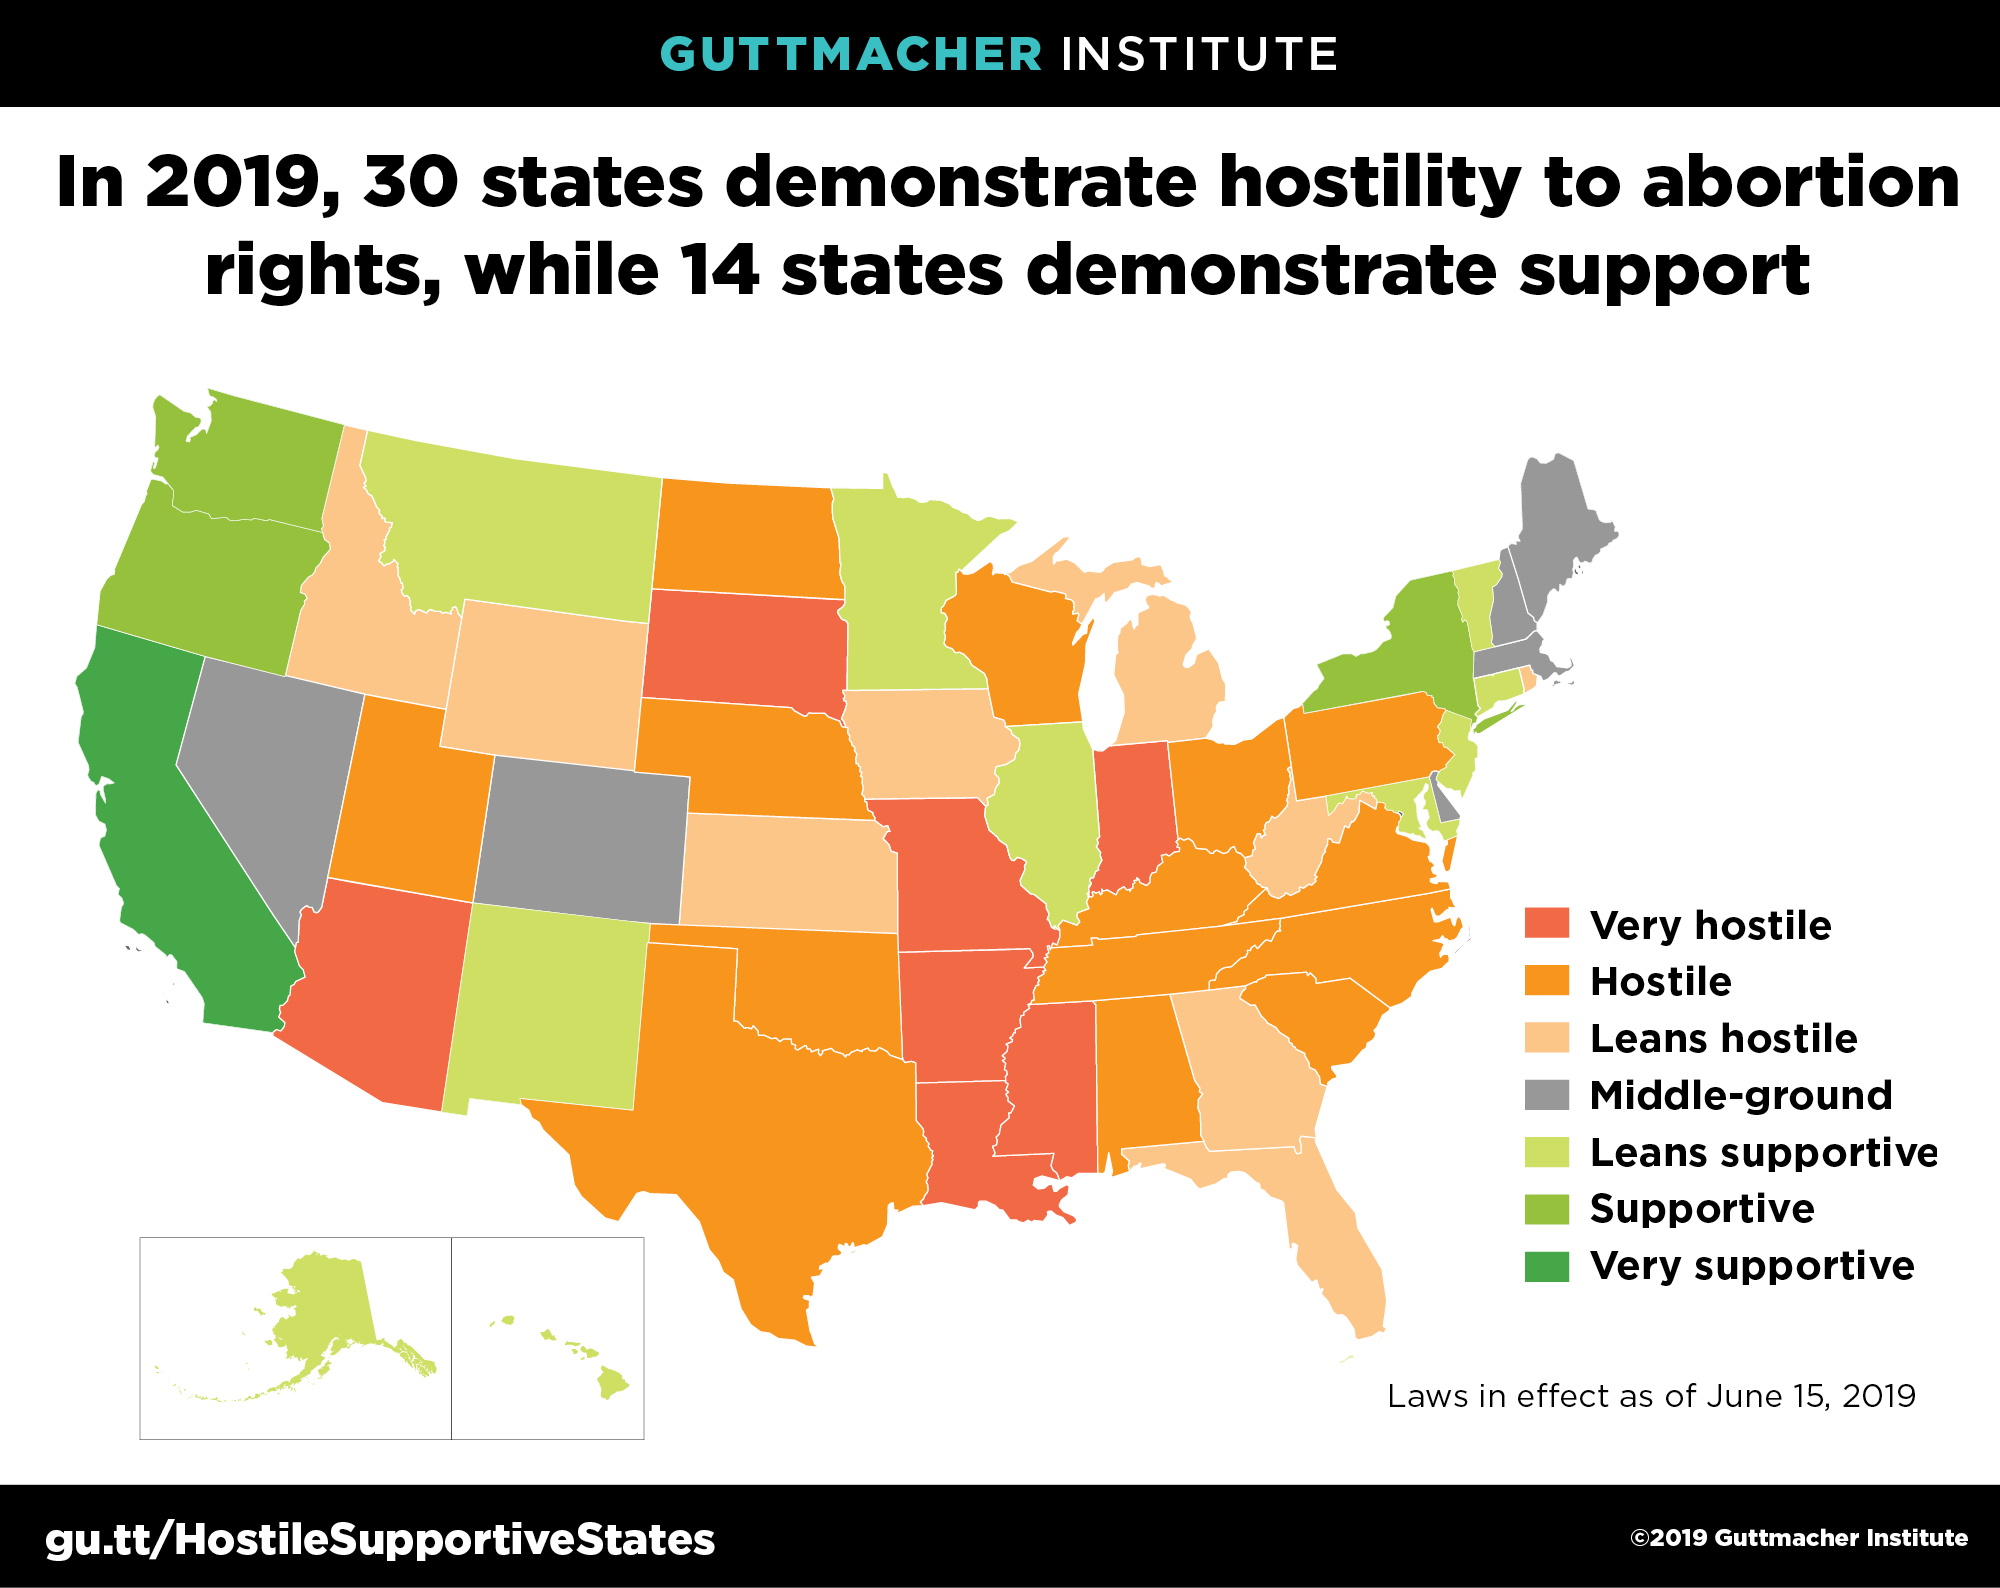 A map of the US illustrating that in 2019, 30 states demonstrate hostility to abortion rights, while 14 states demonstrate support